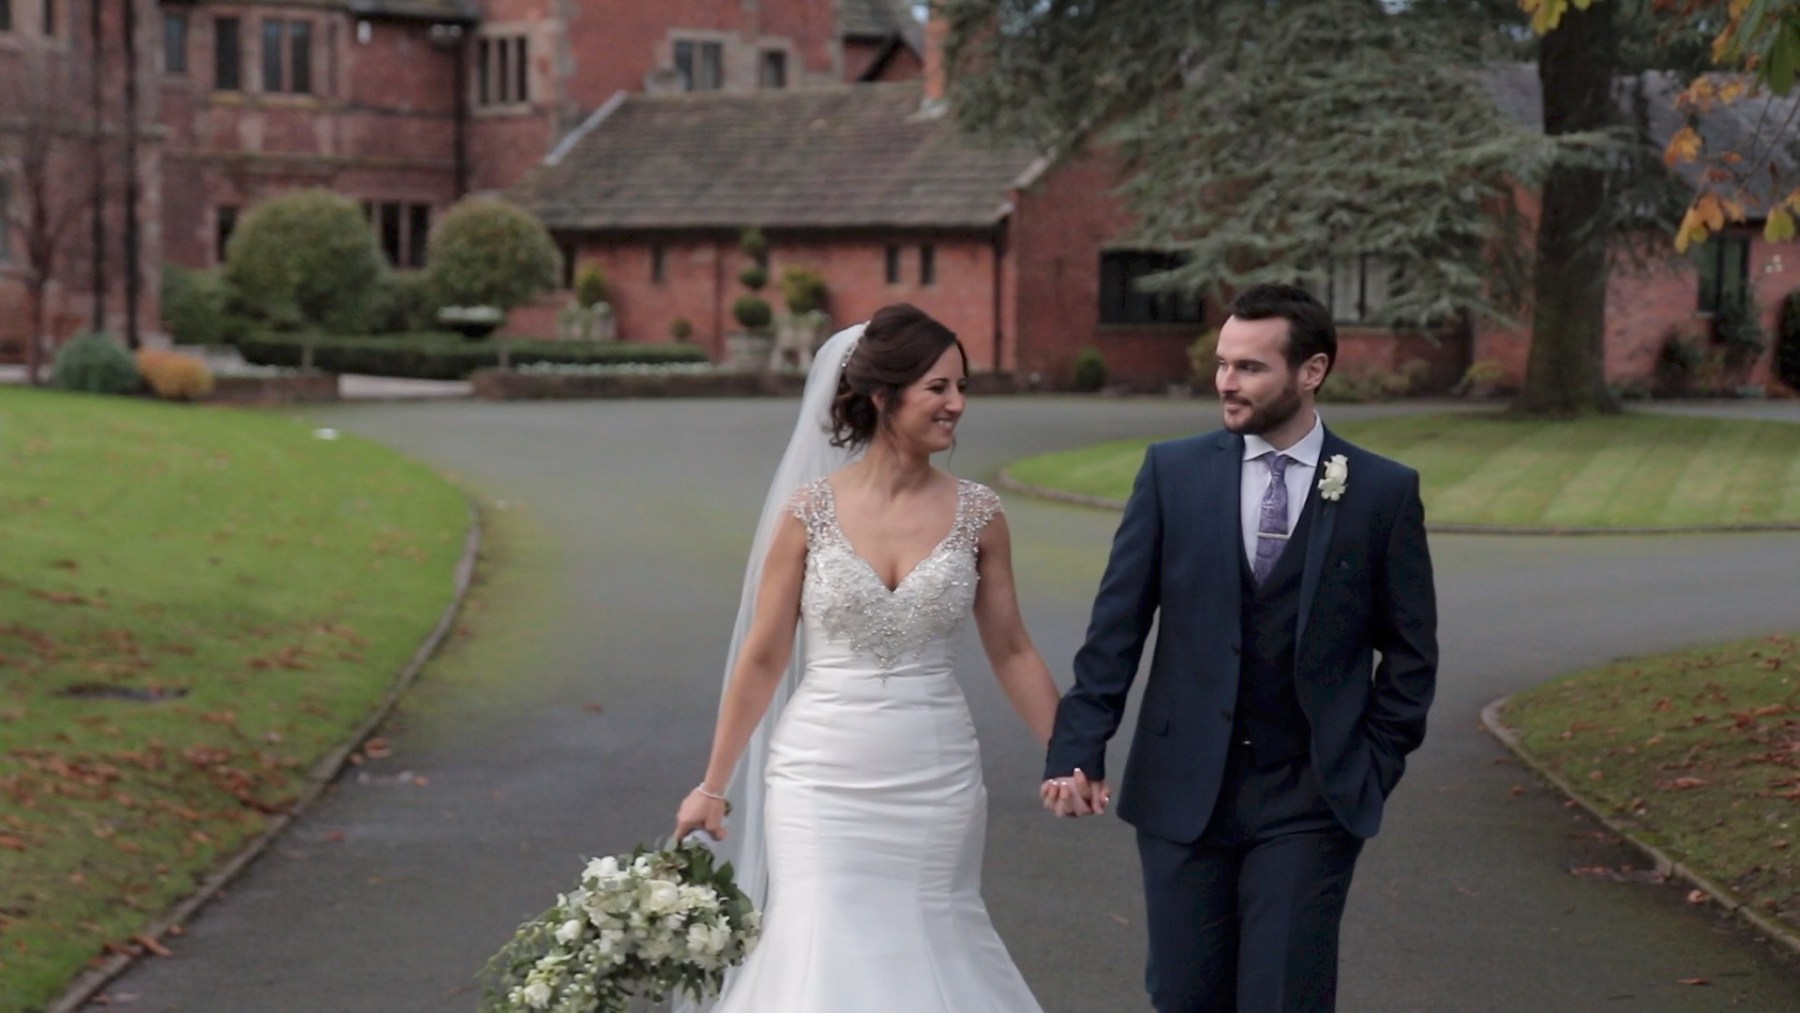 Bride and Groom having a romantic walk at Colshaw Hall in Cheshire